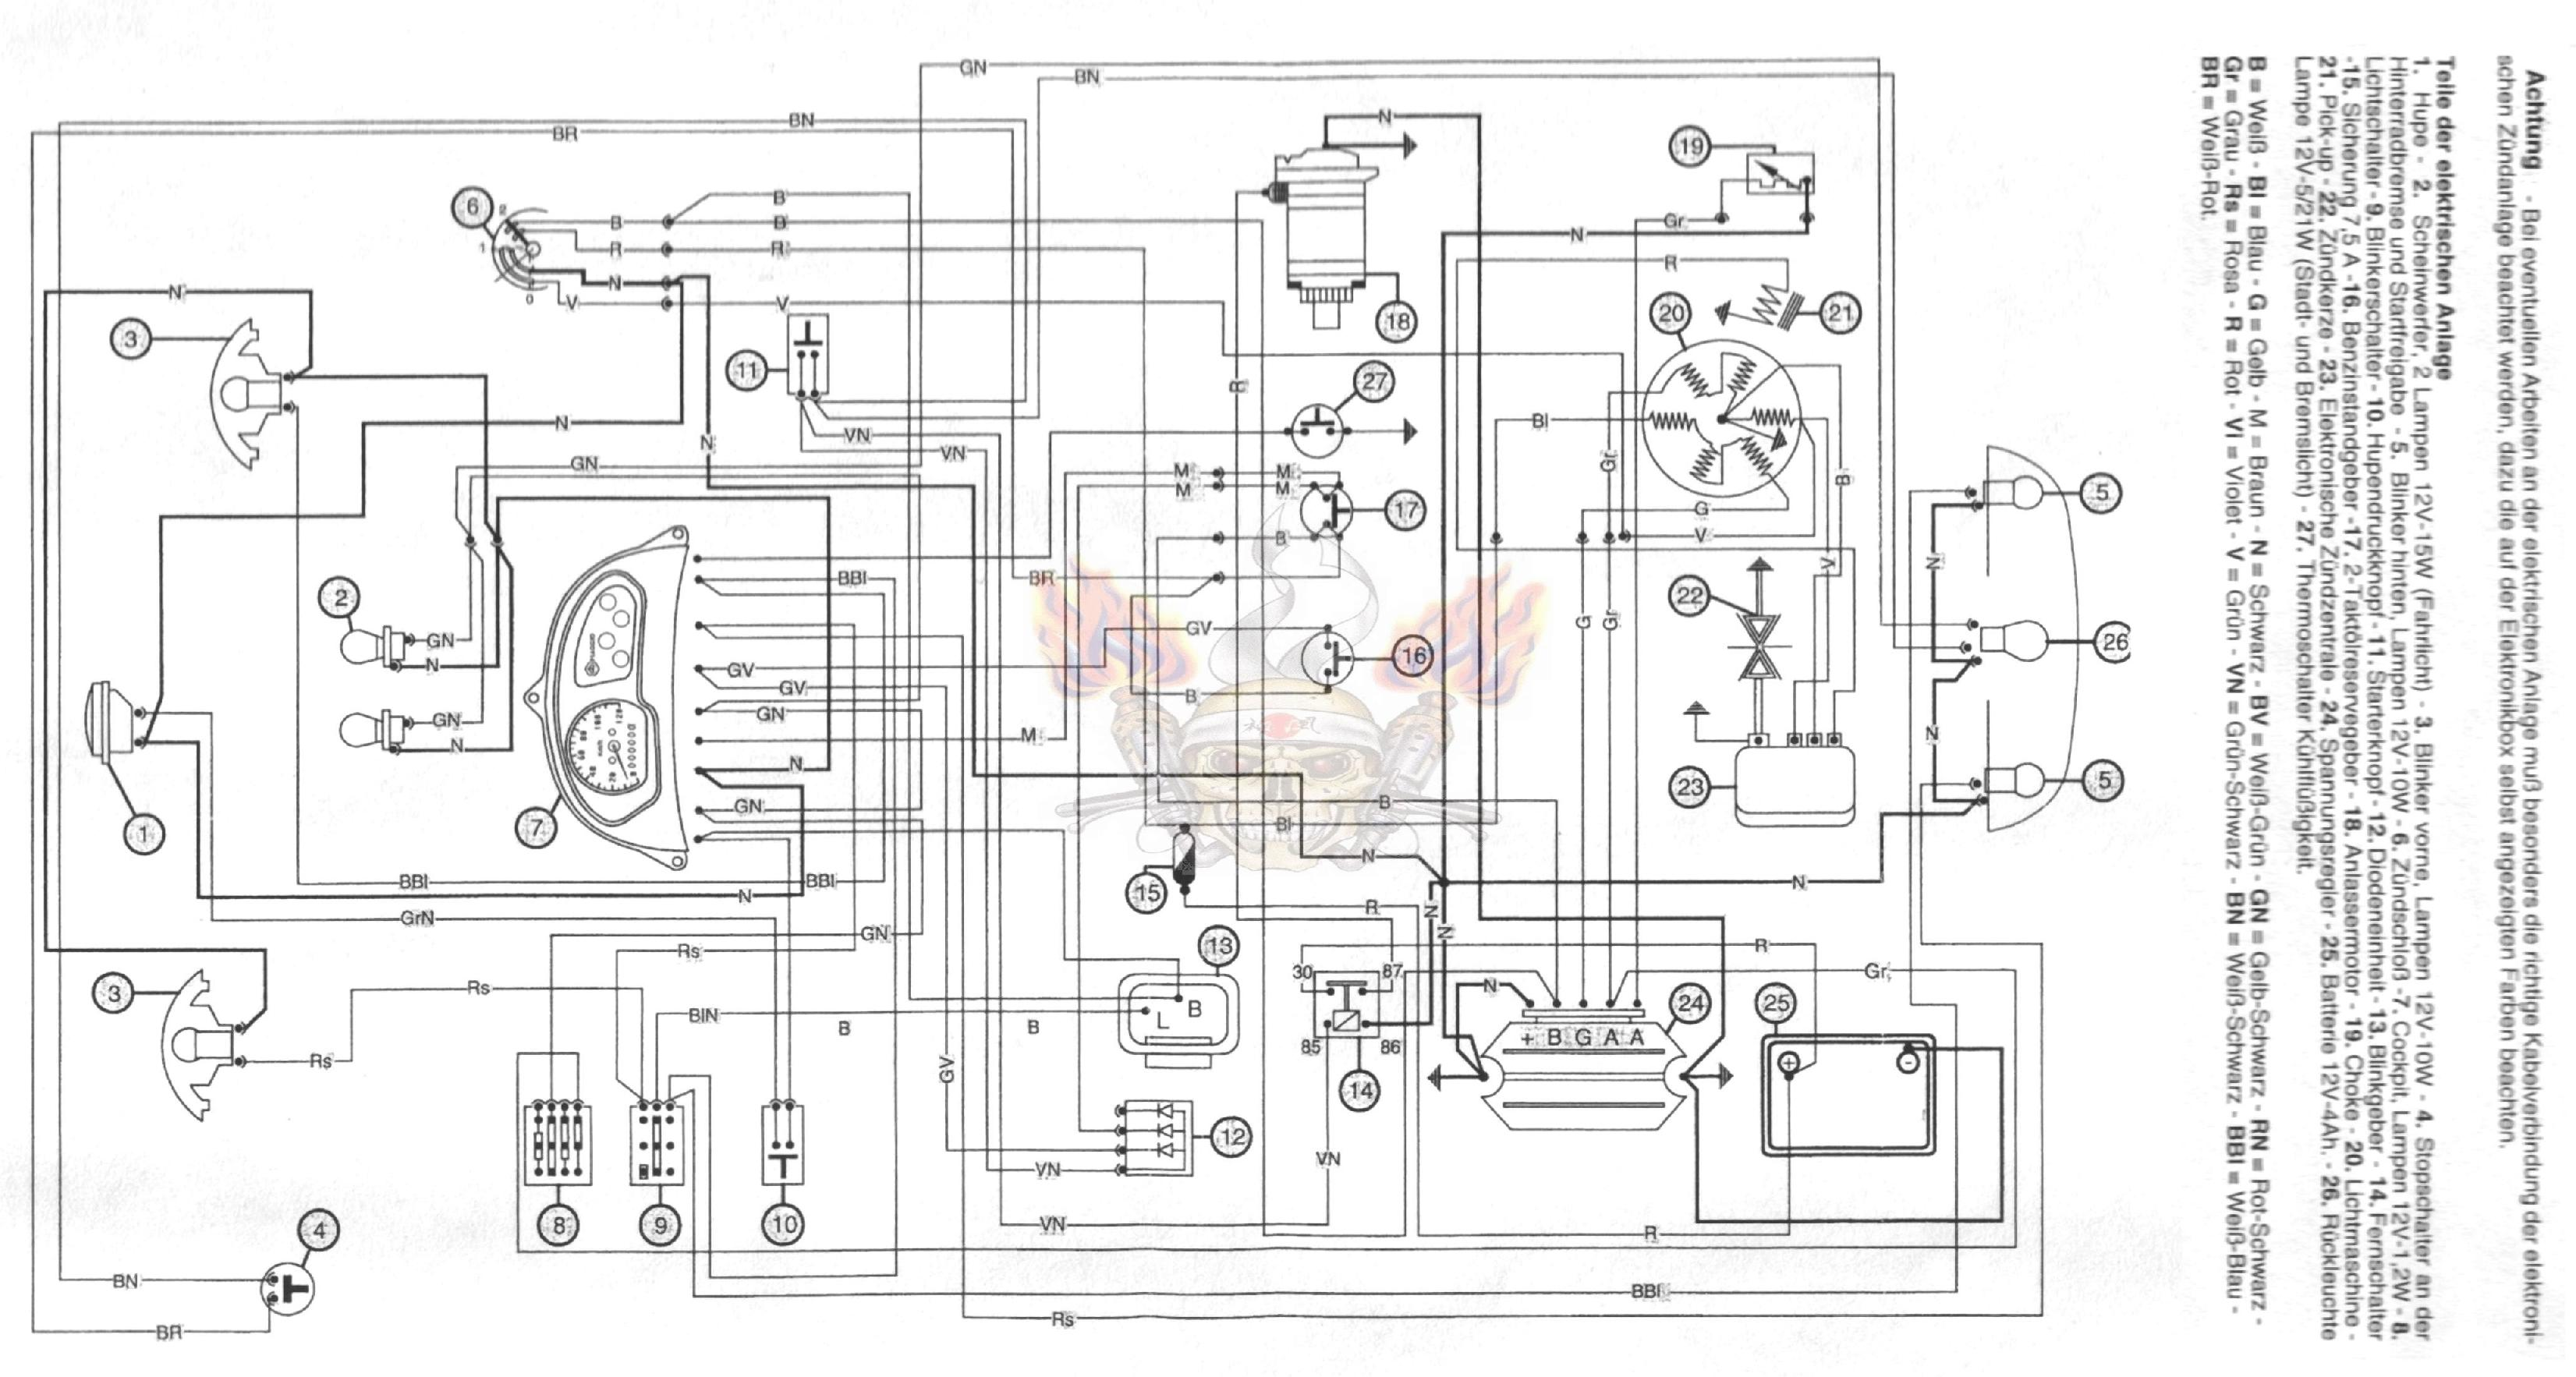 Piaggio Zip 50 Wiring Diagram Ides Dimage De Moto Vespa Gts 300 Super Hd Wallpapers